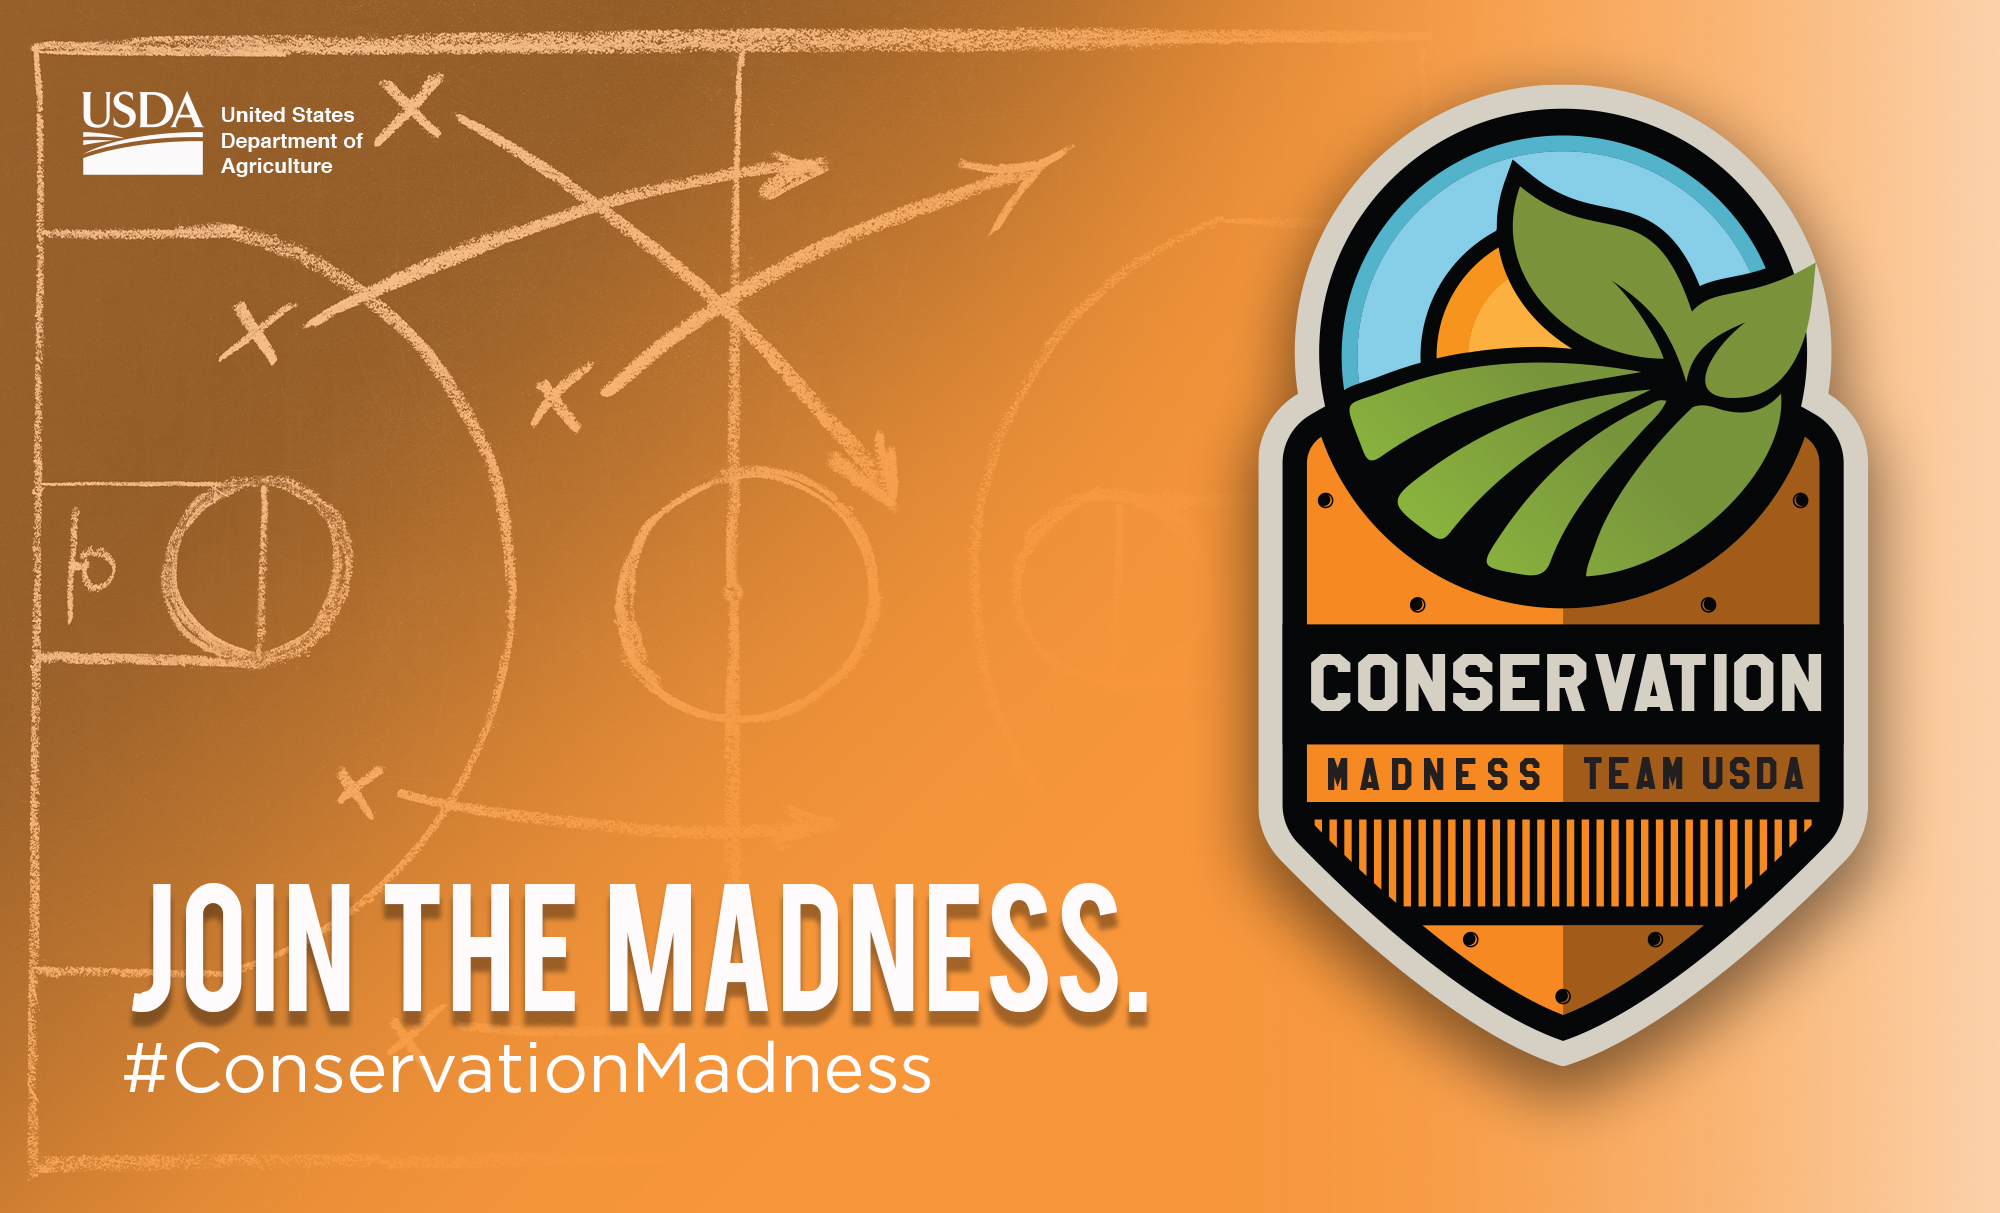 HF-ConservationMadness-19